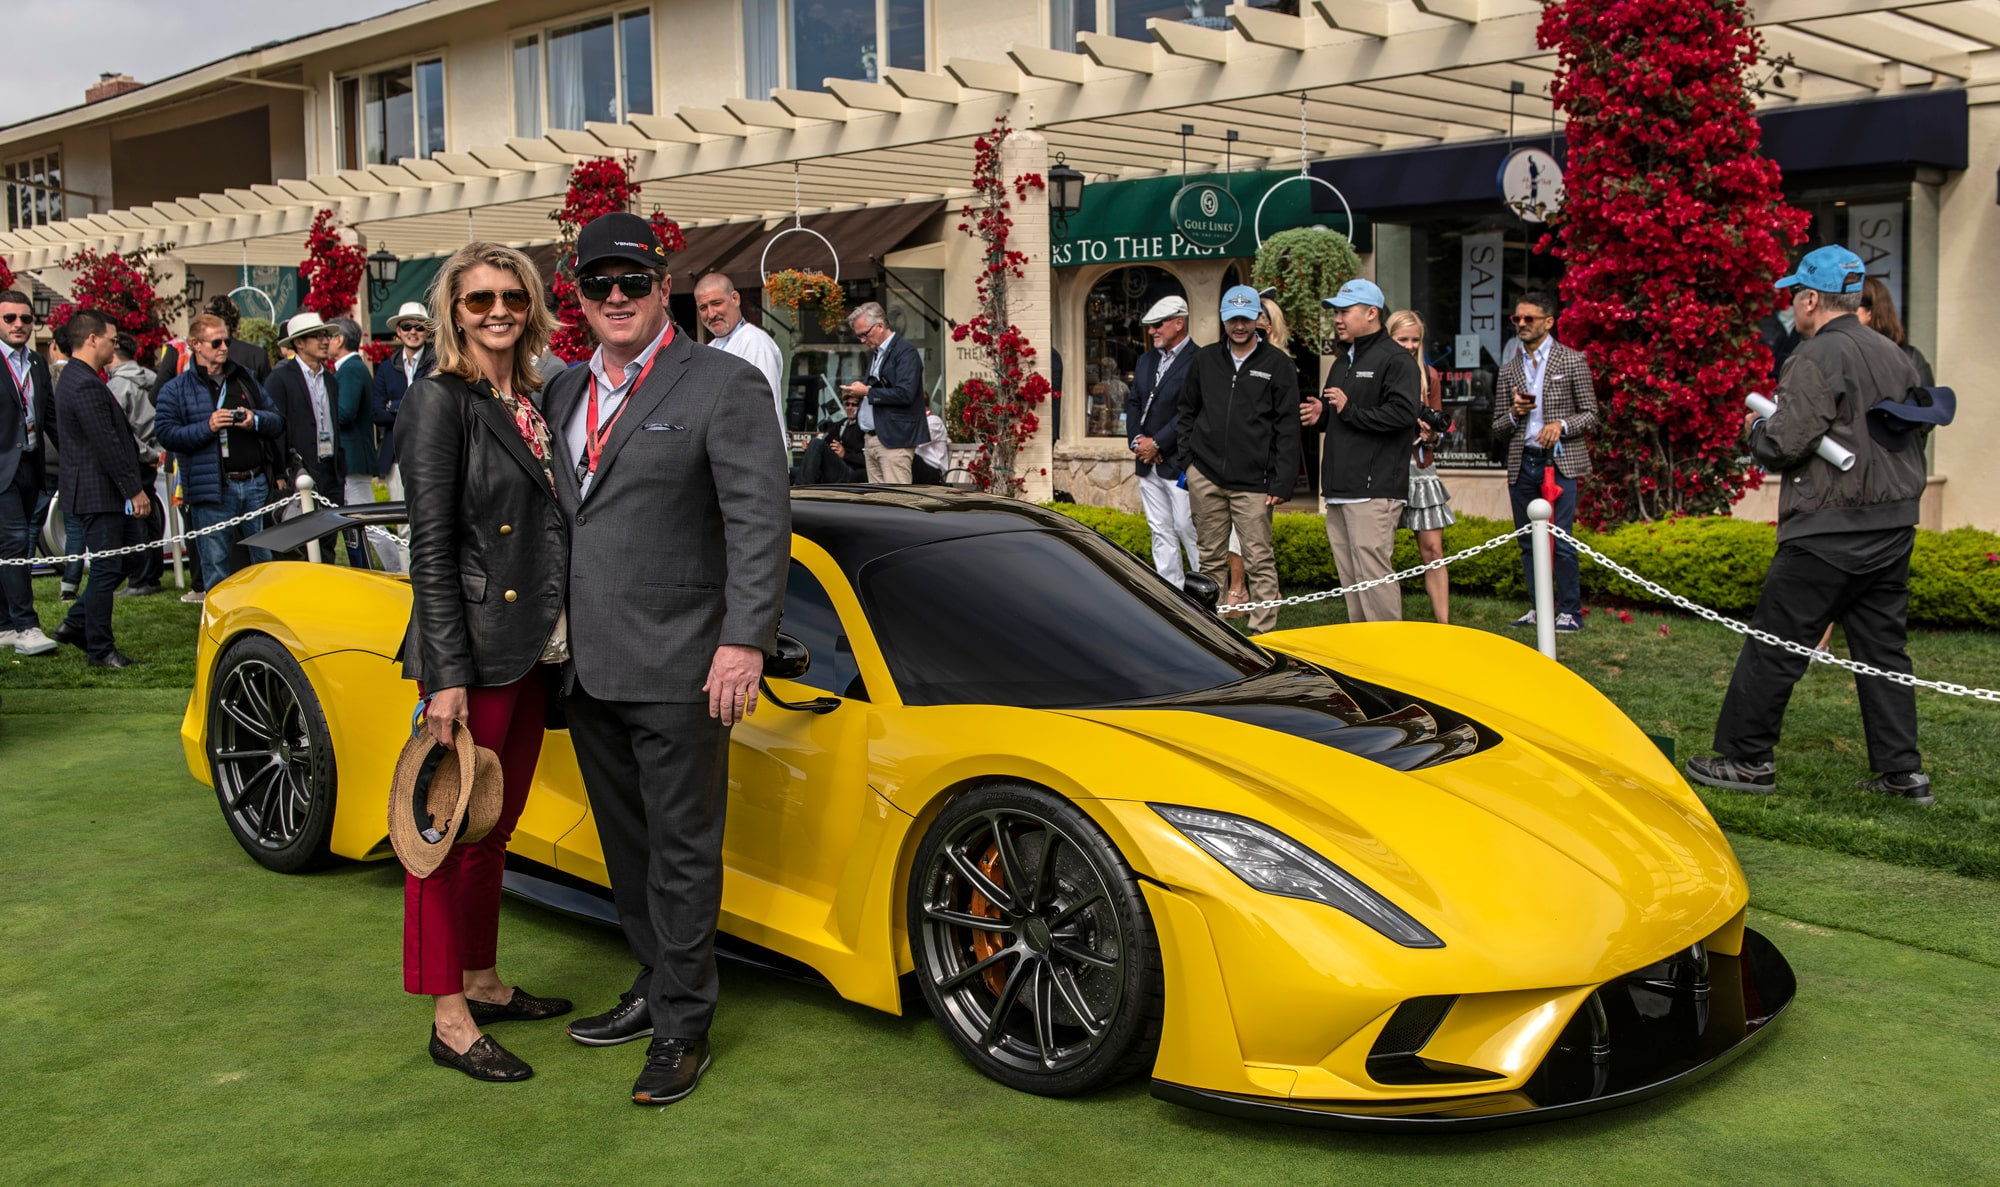 Hennessey Venom F5 at Pebble Beach 2018